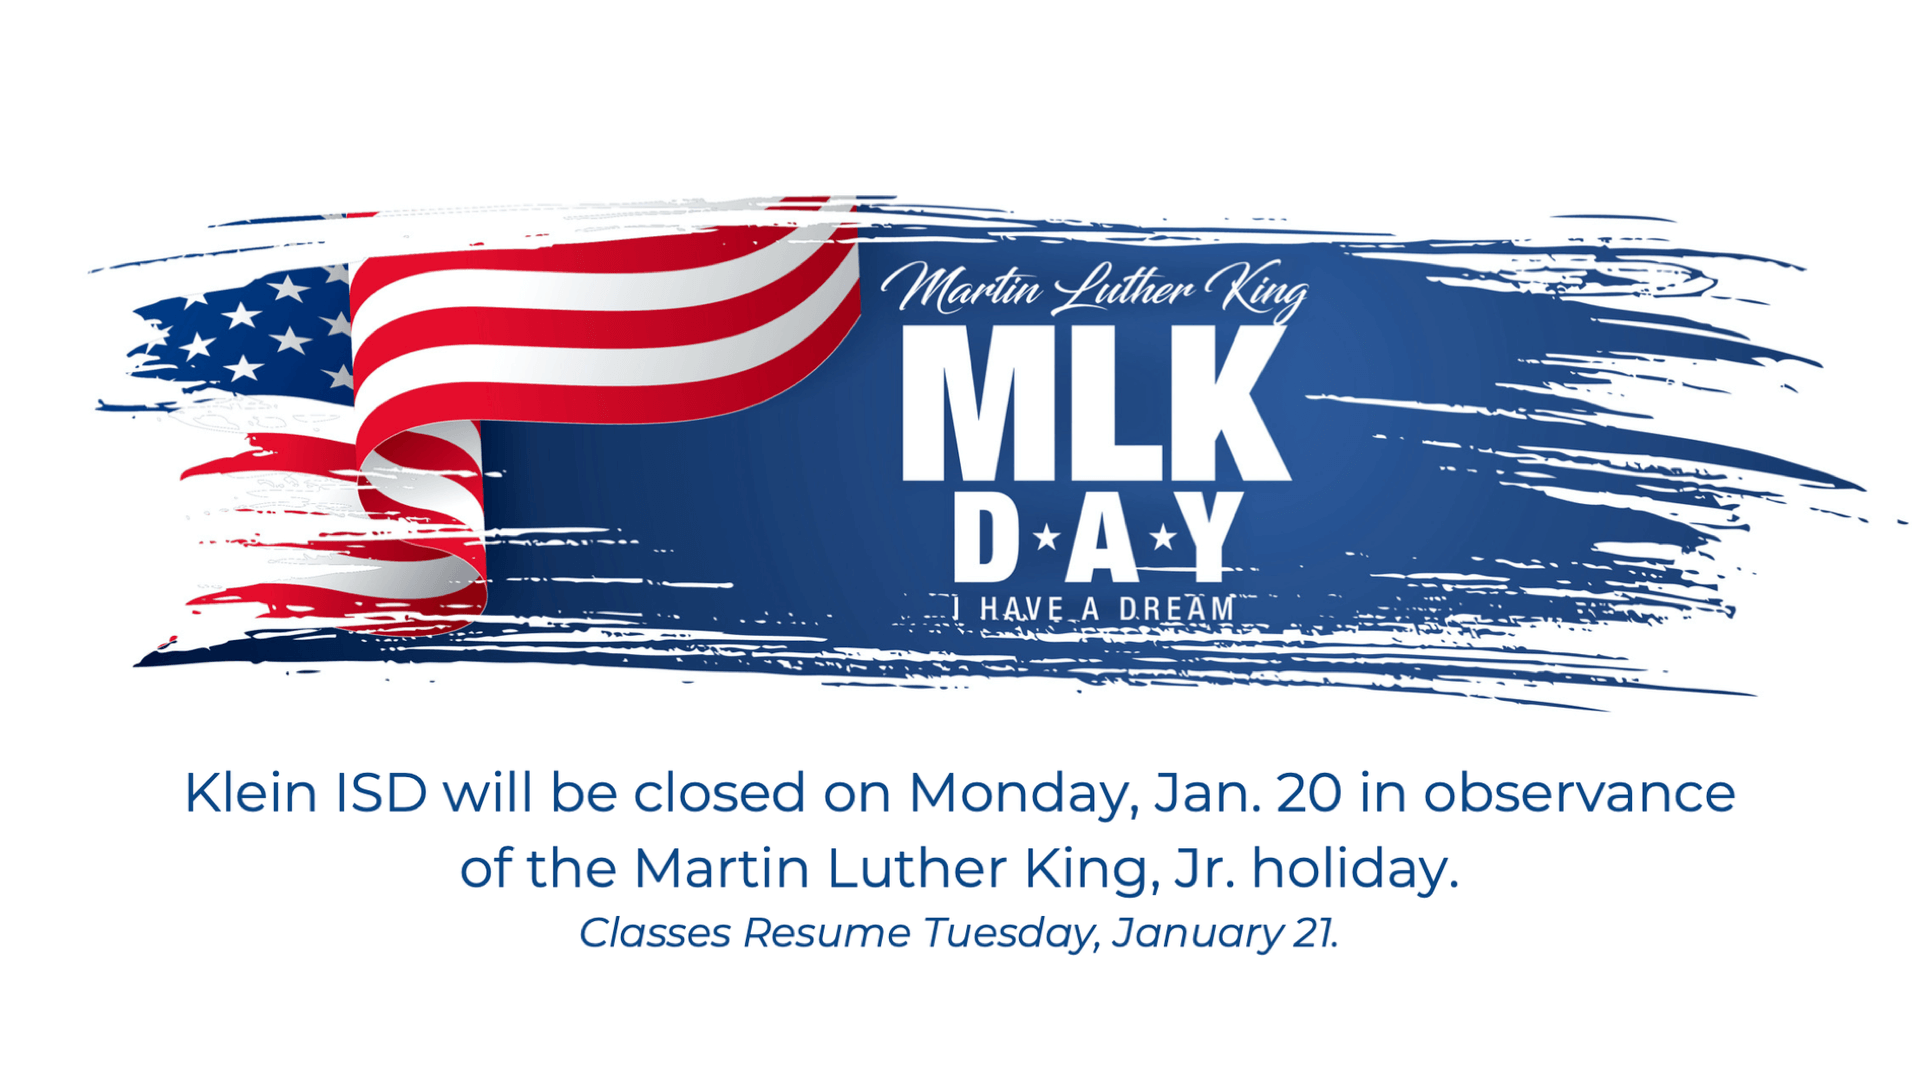 Klein ISD Closed Jan. 20, 2020 in Observance of MLK Day